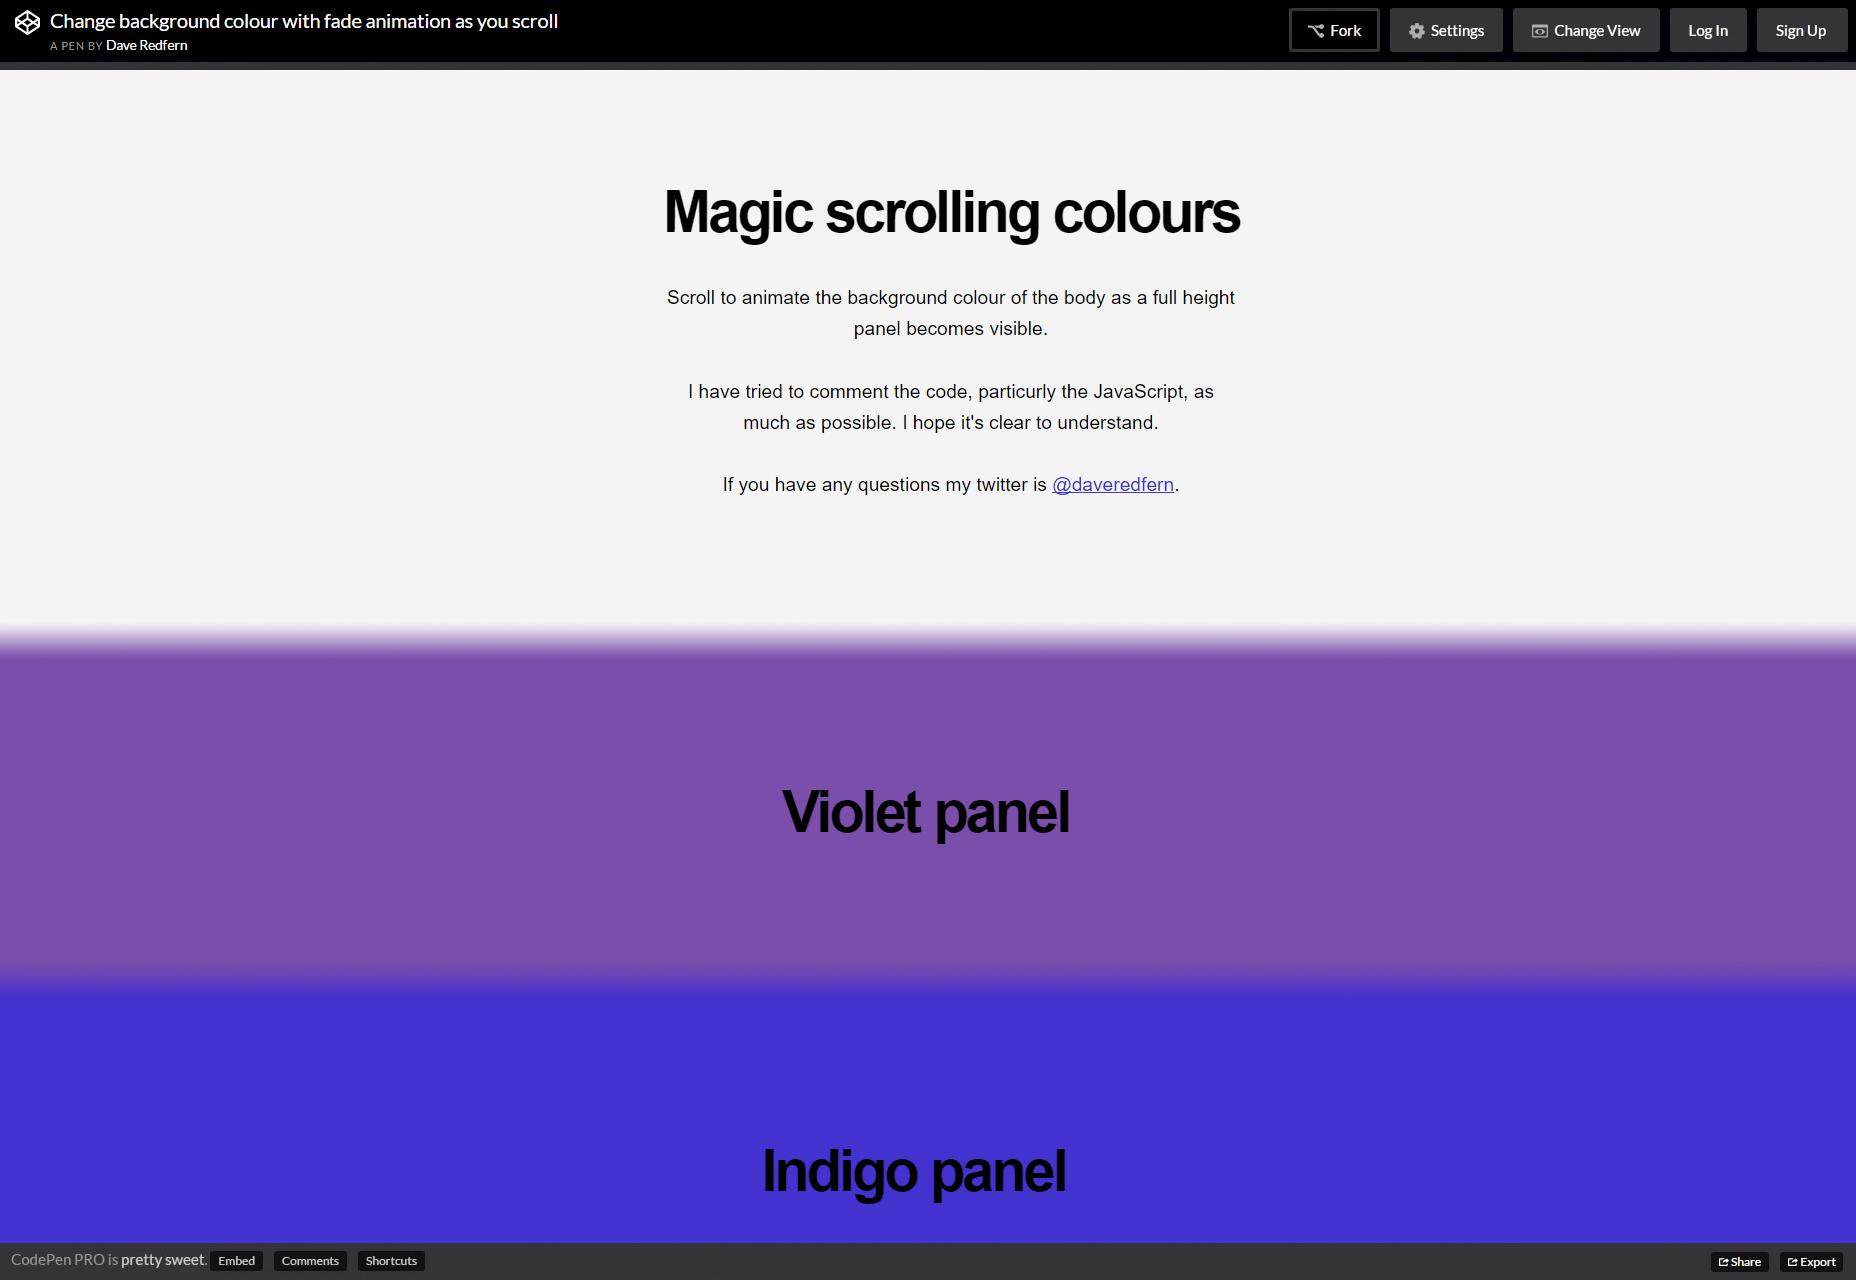 fade-background-color-animation-as-you-scroll